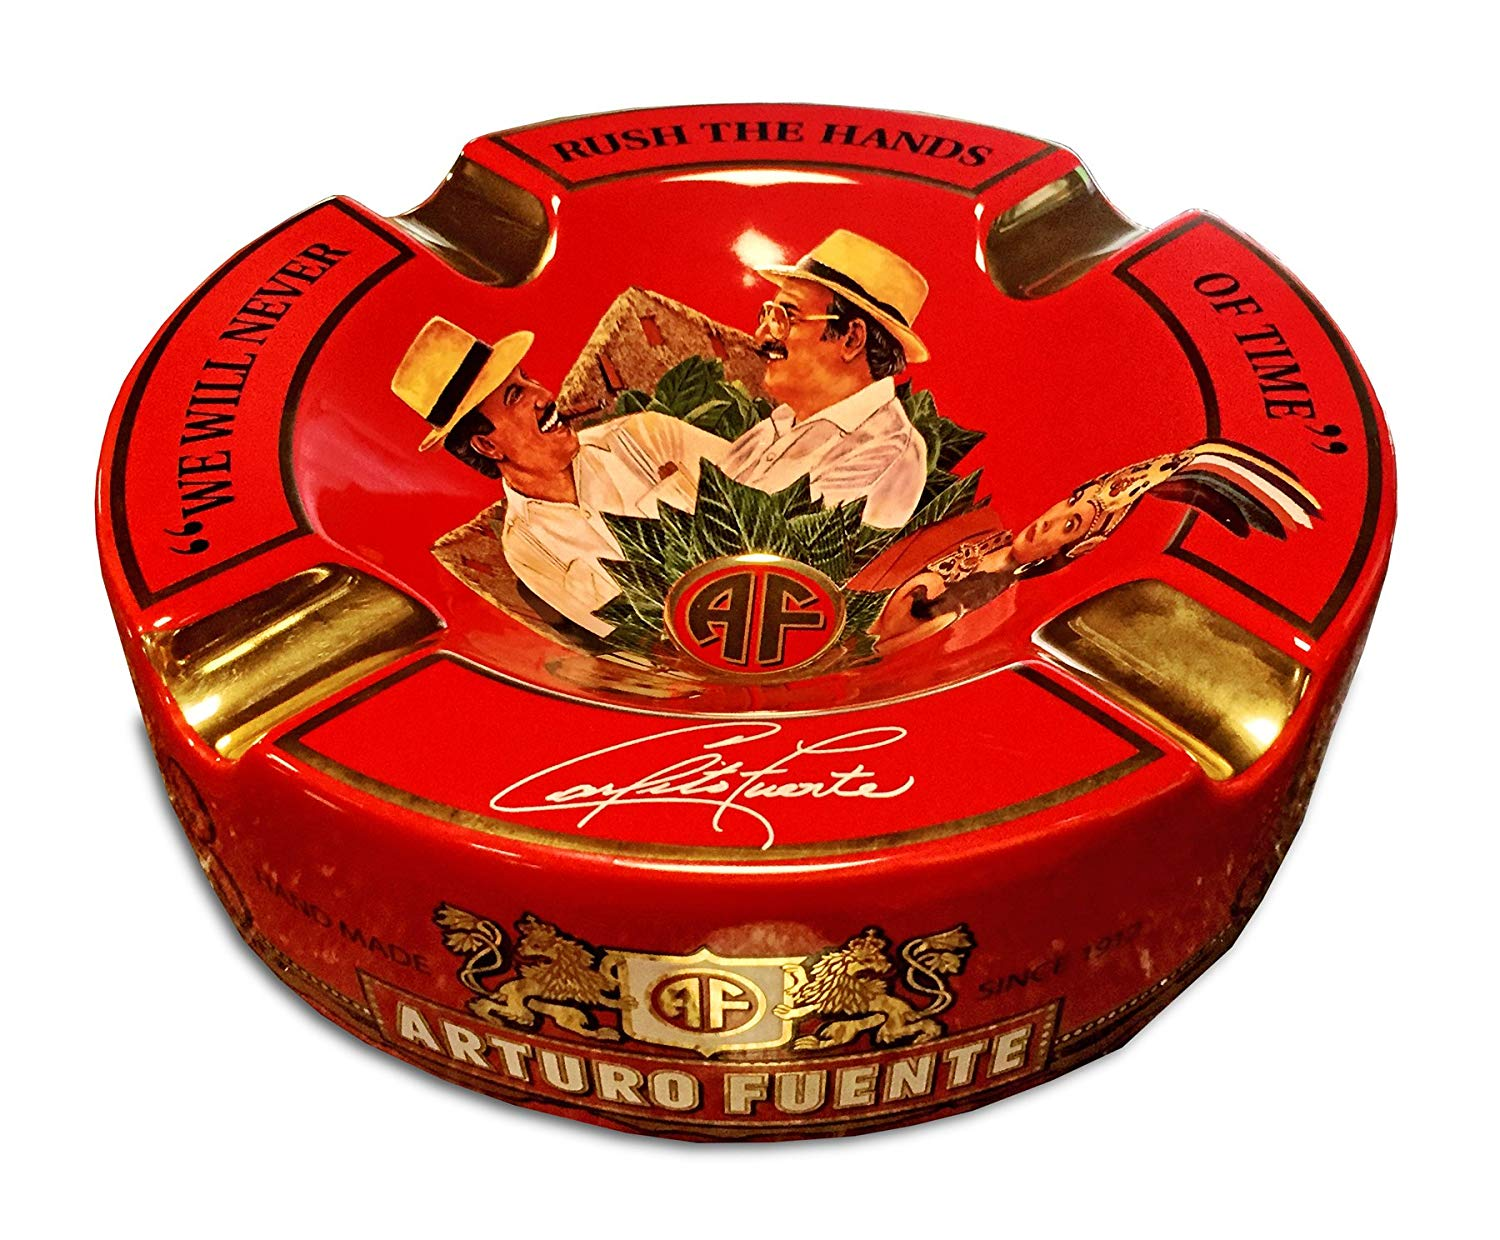 gat-tan-arturo-fuente-hands-of-time-phien-ban-limited-red